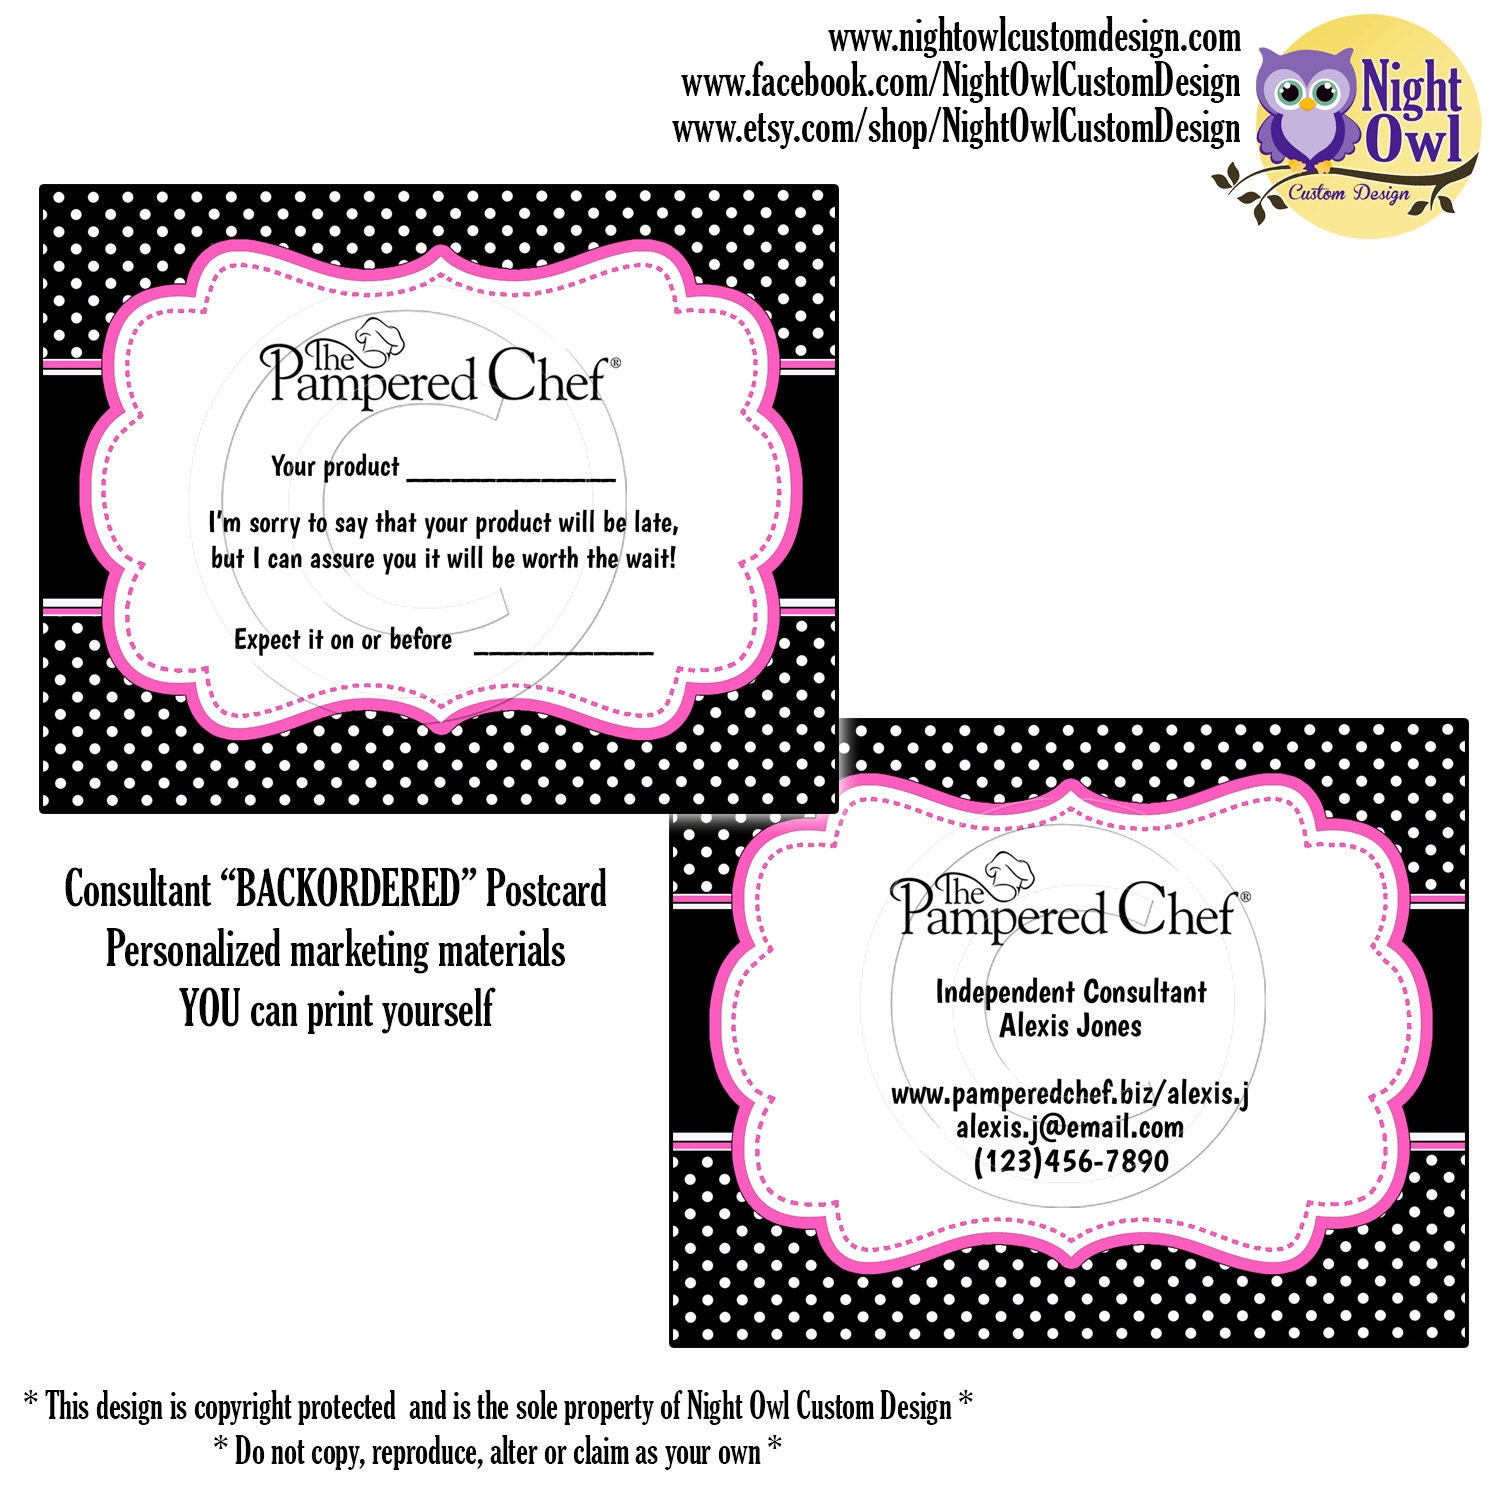 pampered chef consultant postcard by nightowlcustomdesign on etsy. Black Bedroom Furniture Sets. Home Design Ideas